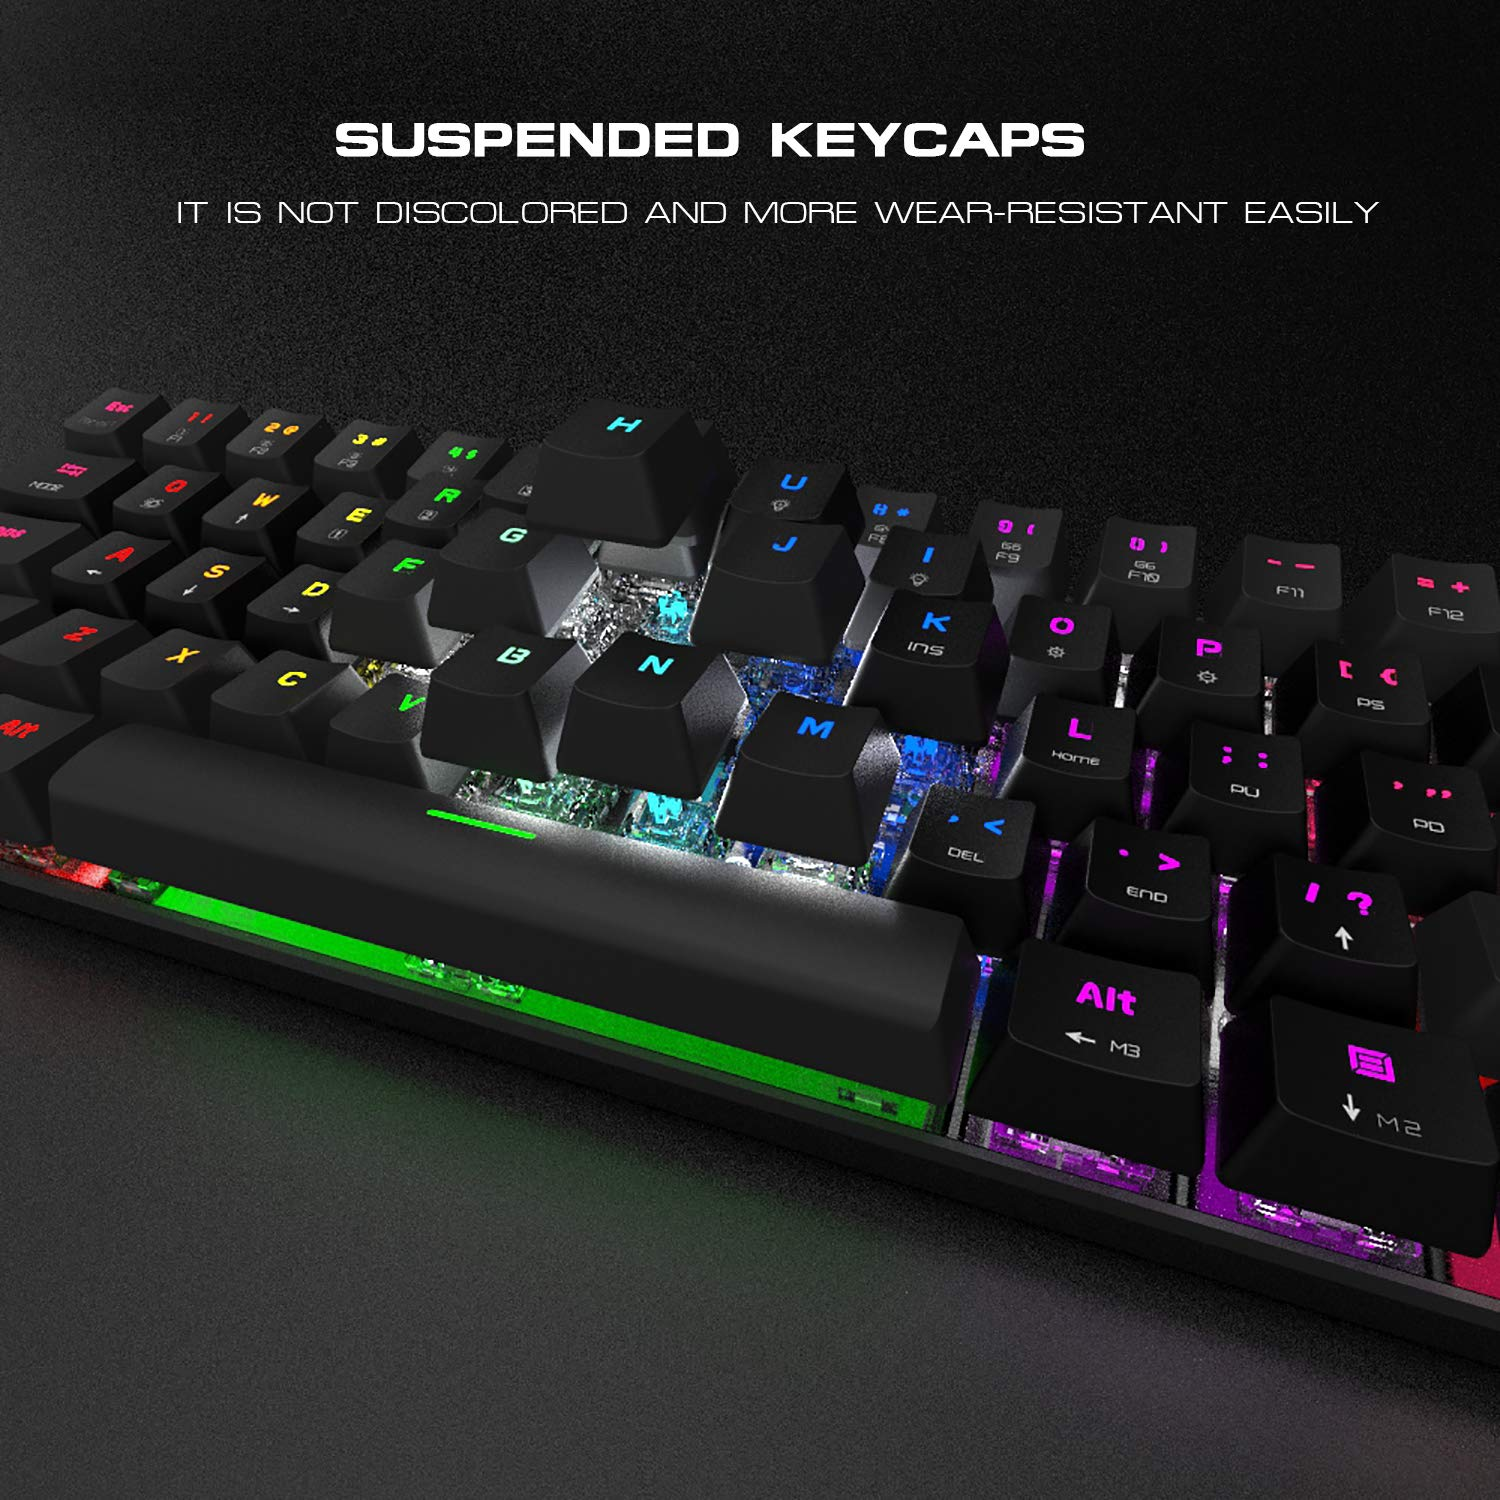 MOTOSPEED 61 Keys Wired//Wireless 3.0 Mechanical Keyboard 60/% RGB LED Backlit Type-C Gaming//Office Keyboard for PC//Mac//Linux//iPad//iPhone//Smartphone//Laptop Blue Switch